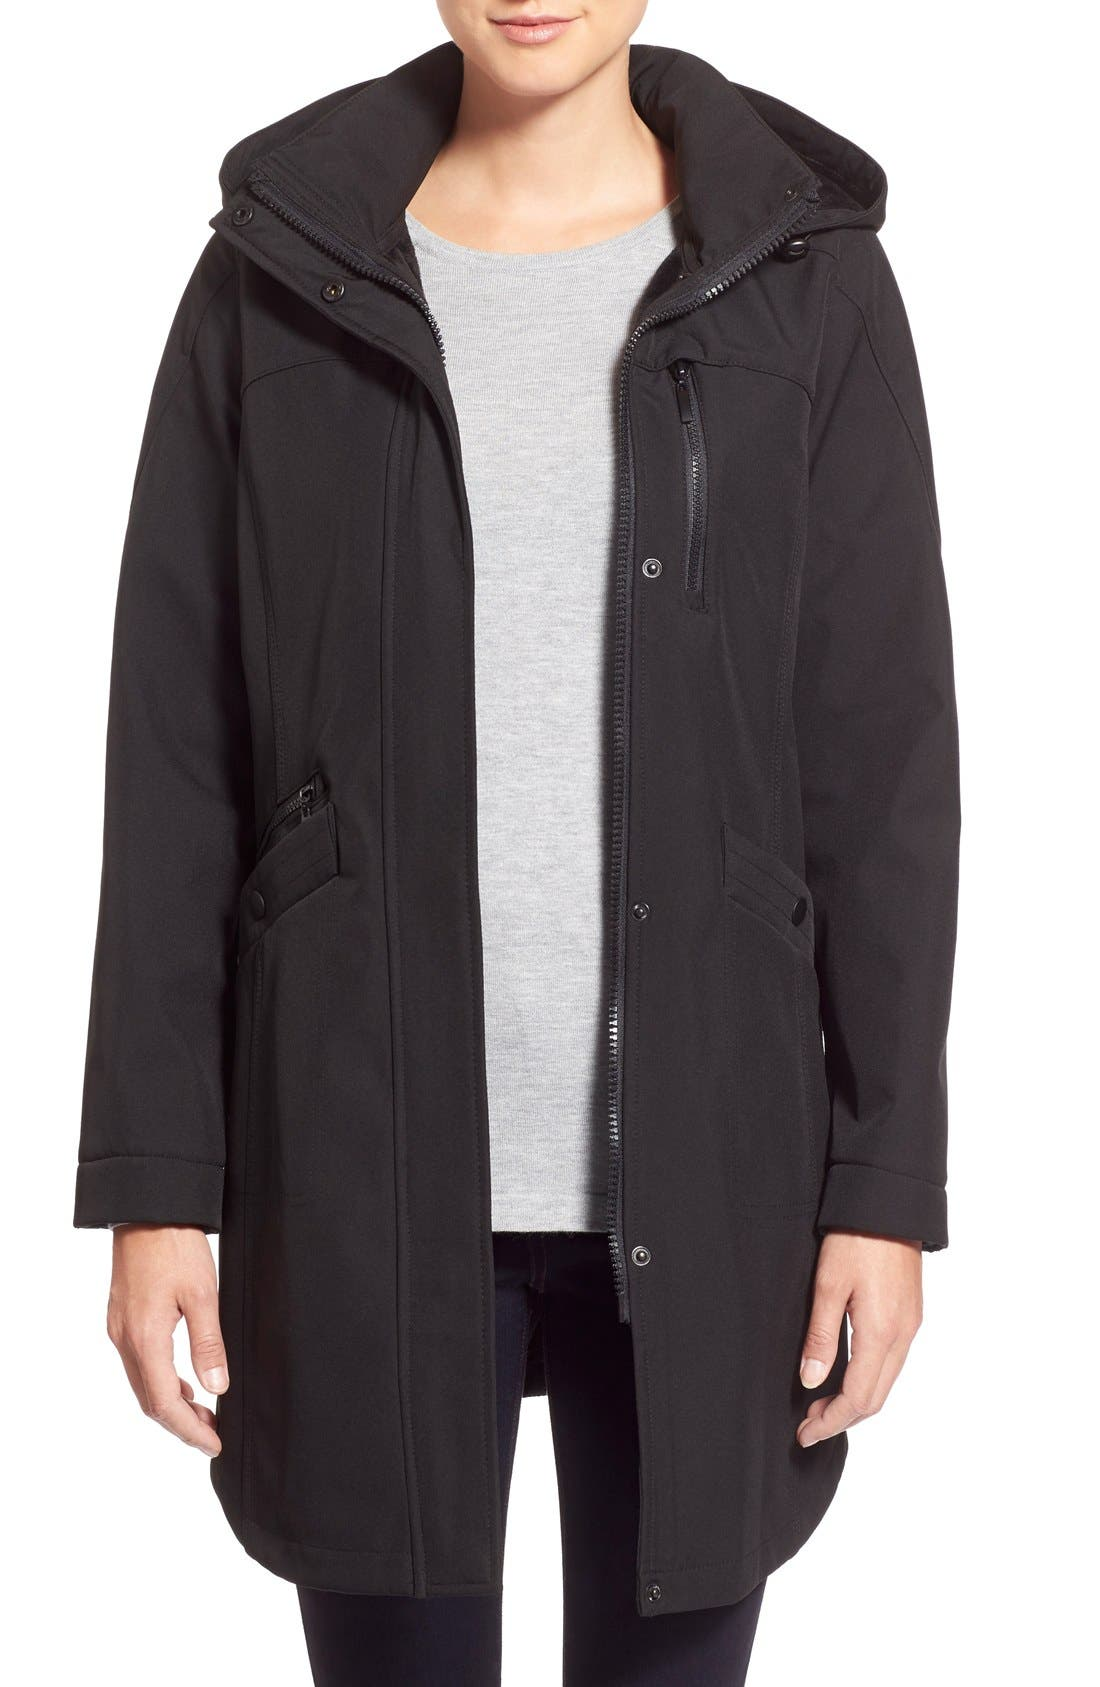 Kristen Blake Crossdye Hooded Soft Shell Jacket (Regular & Petite)